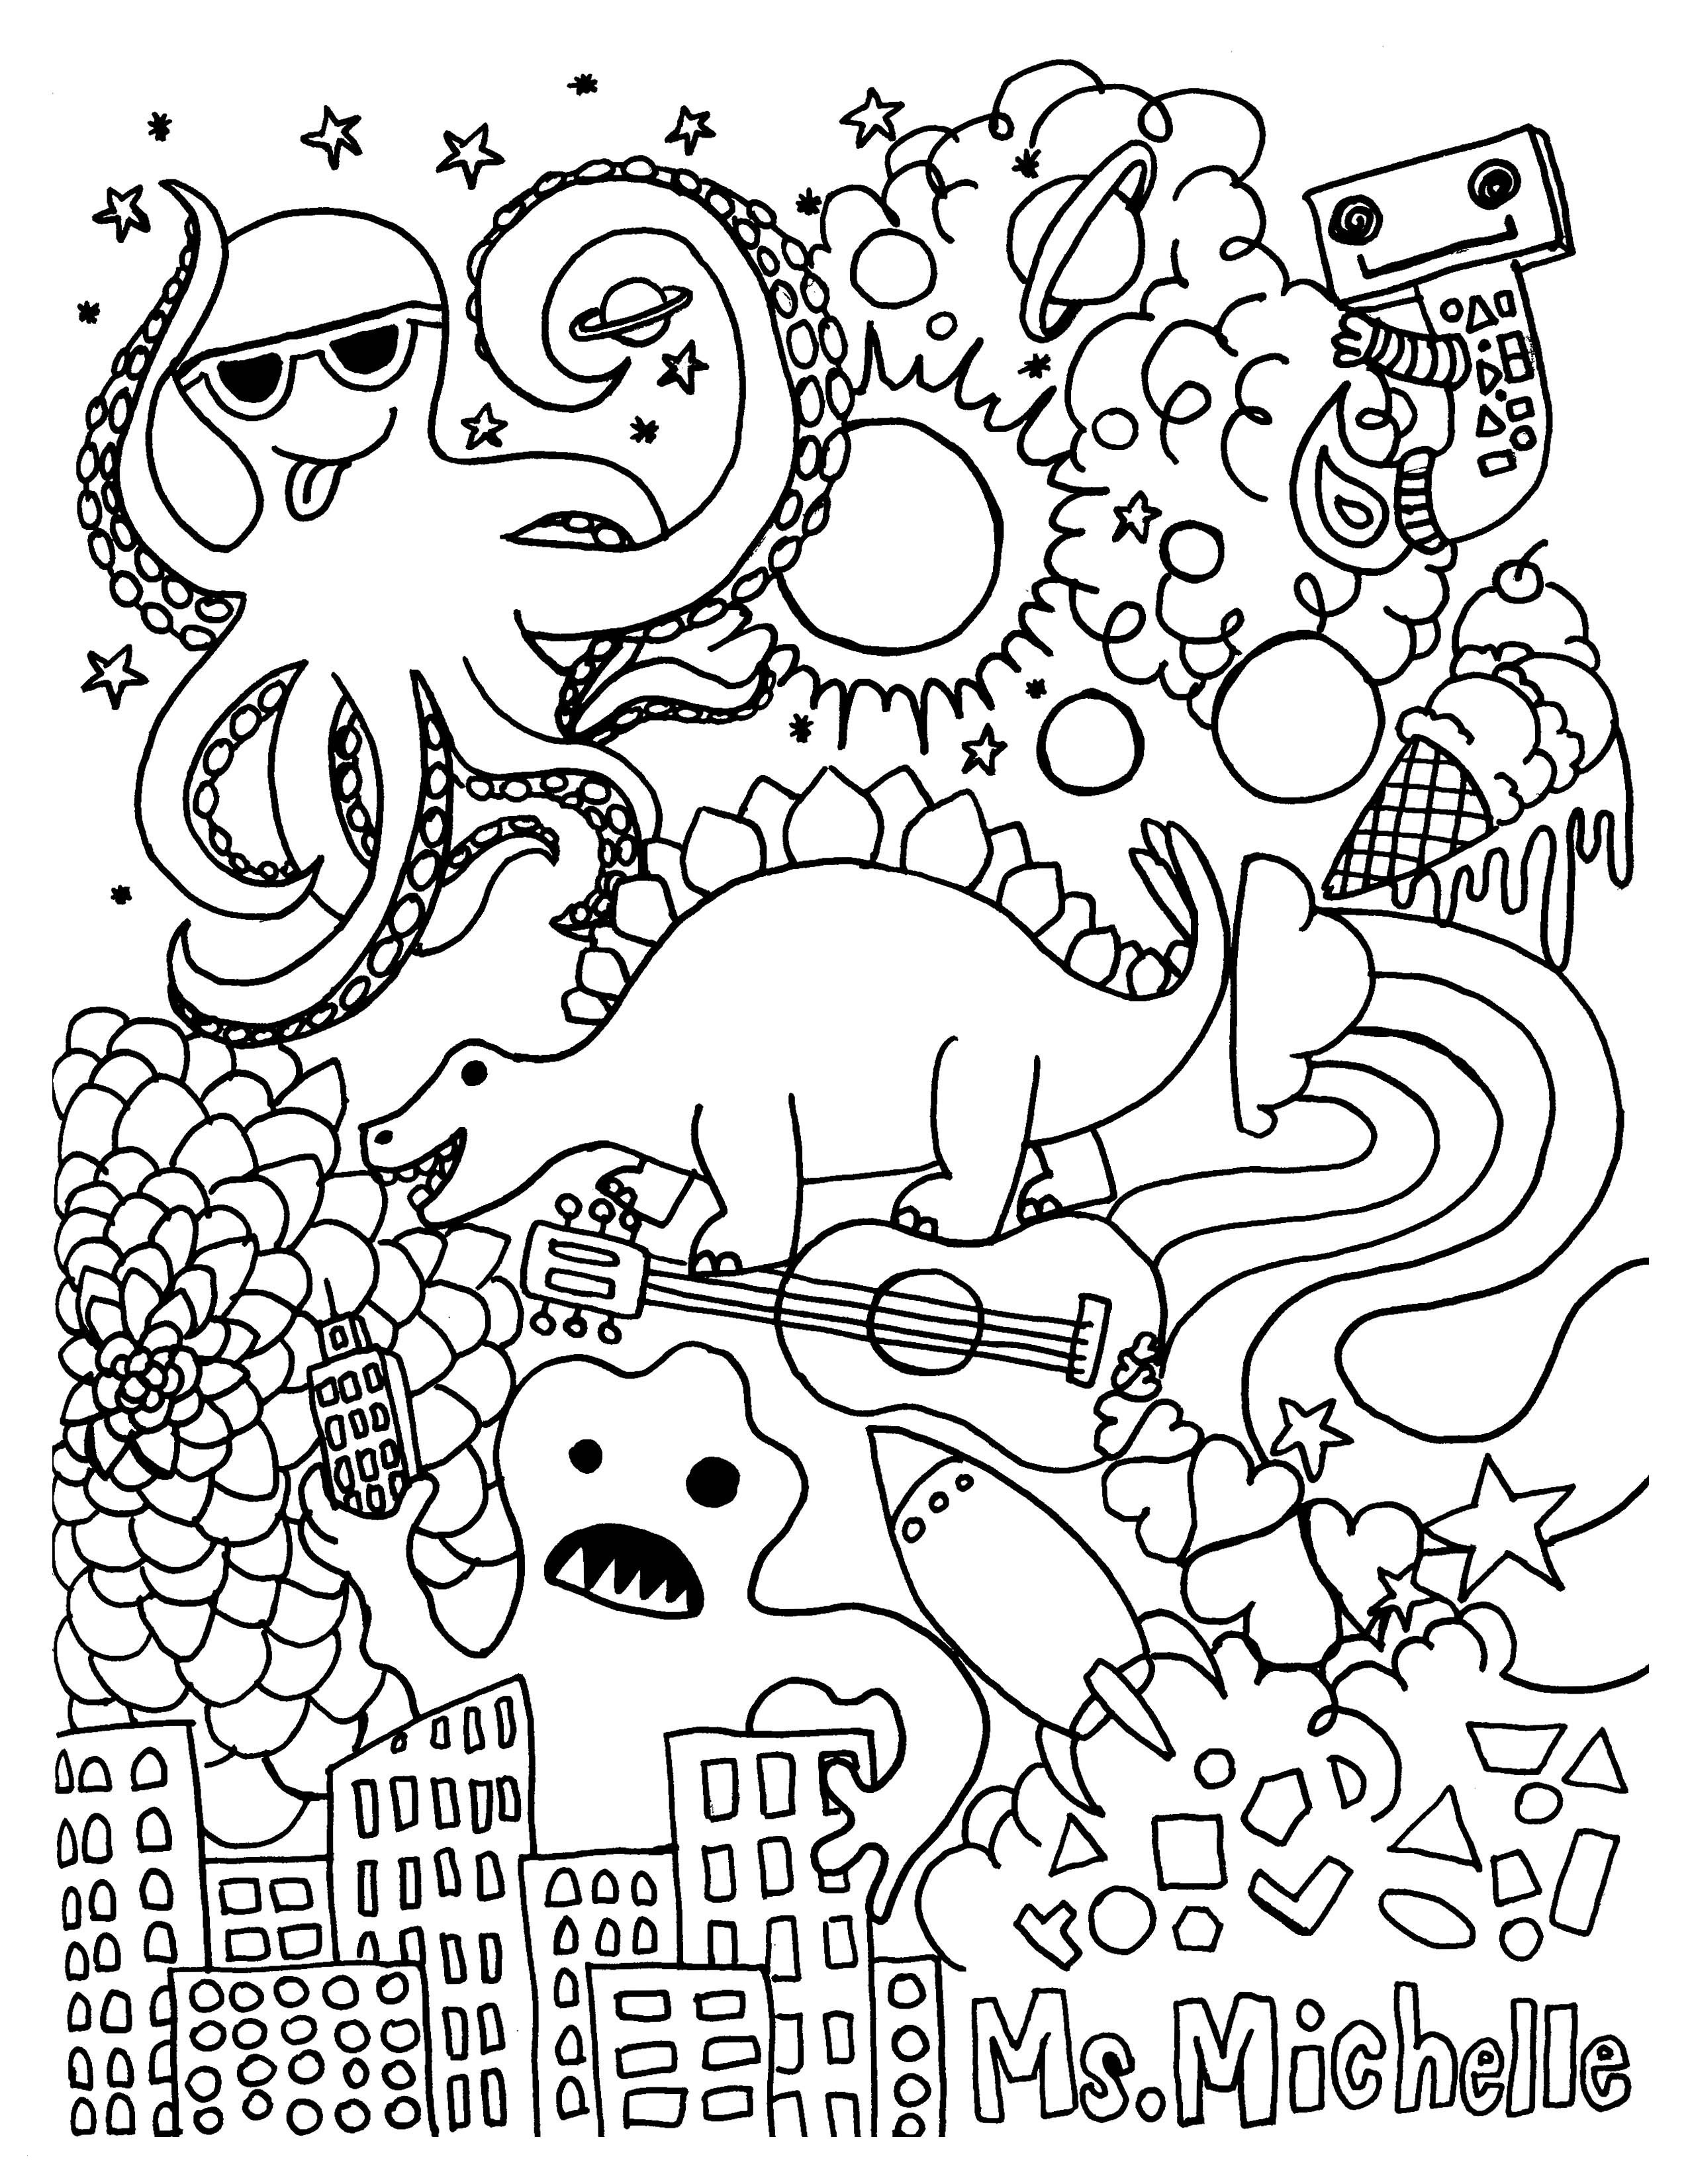 mindware coloring pages free Collection-Where To Buy Coloring Books Inspirational Corn Stalk Coloring Page New Line Coloring Book Luxury Hair Coloring Gallery Where To Buy Coloring Books Best 18-a